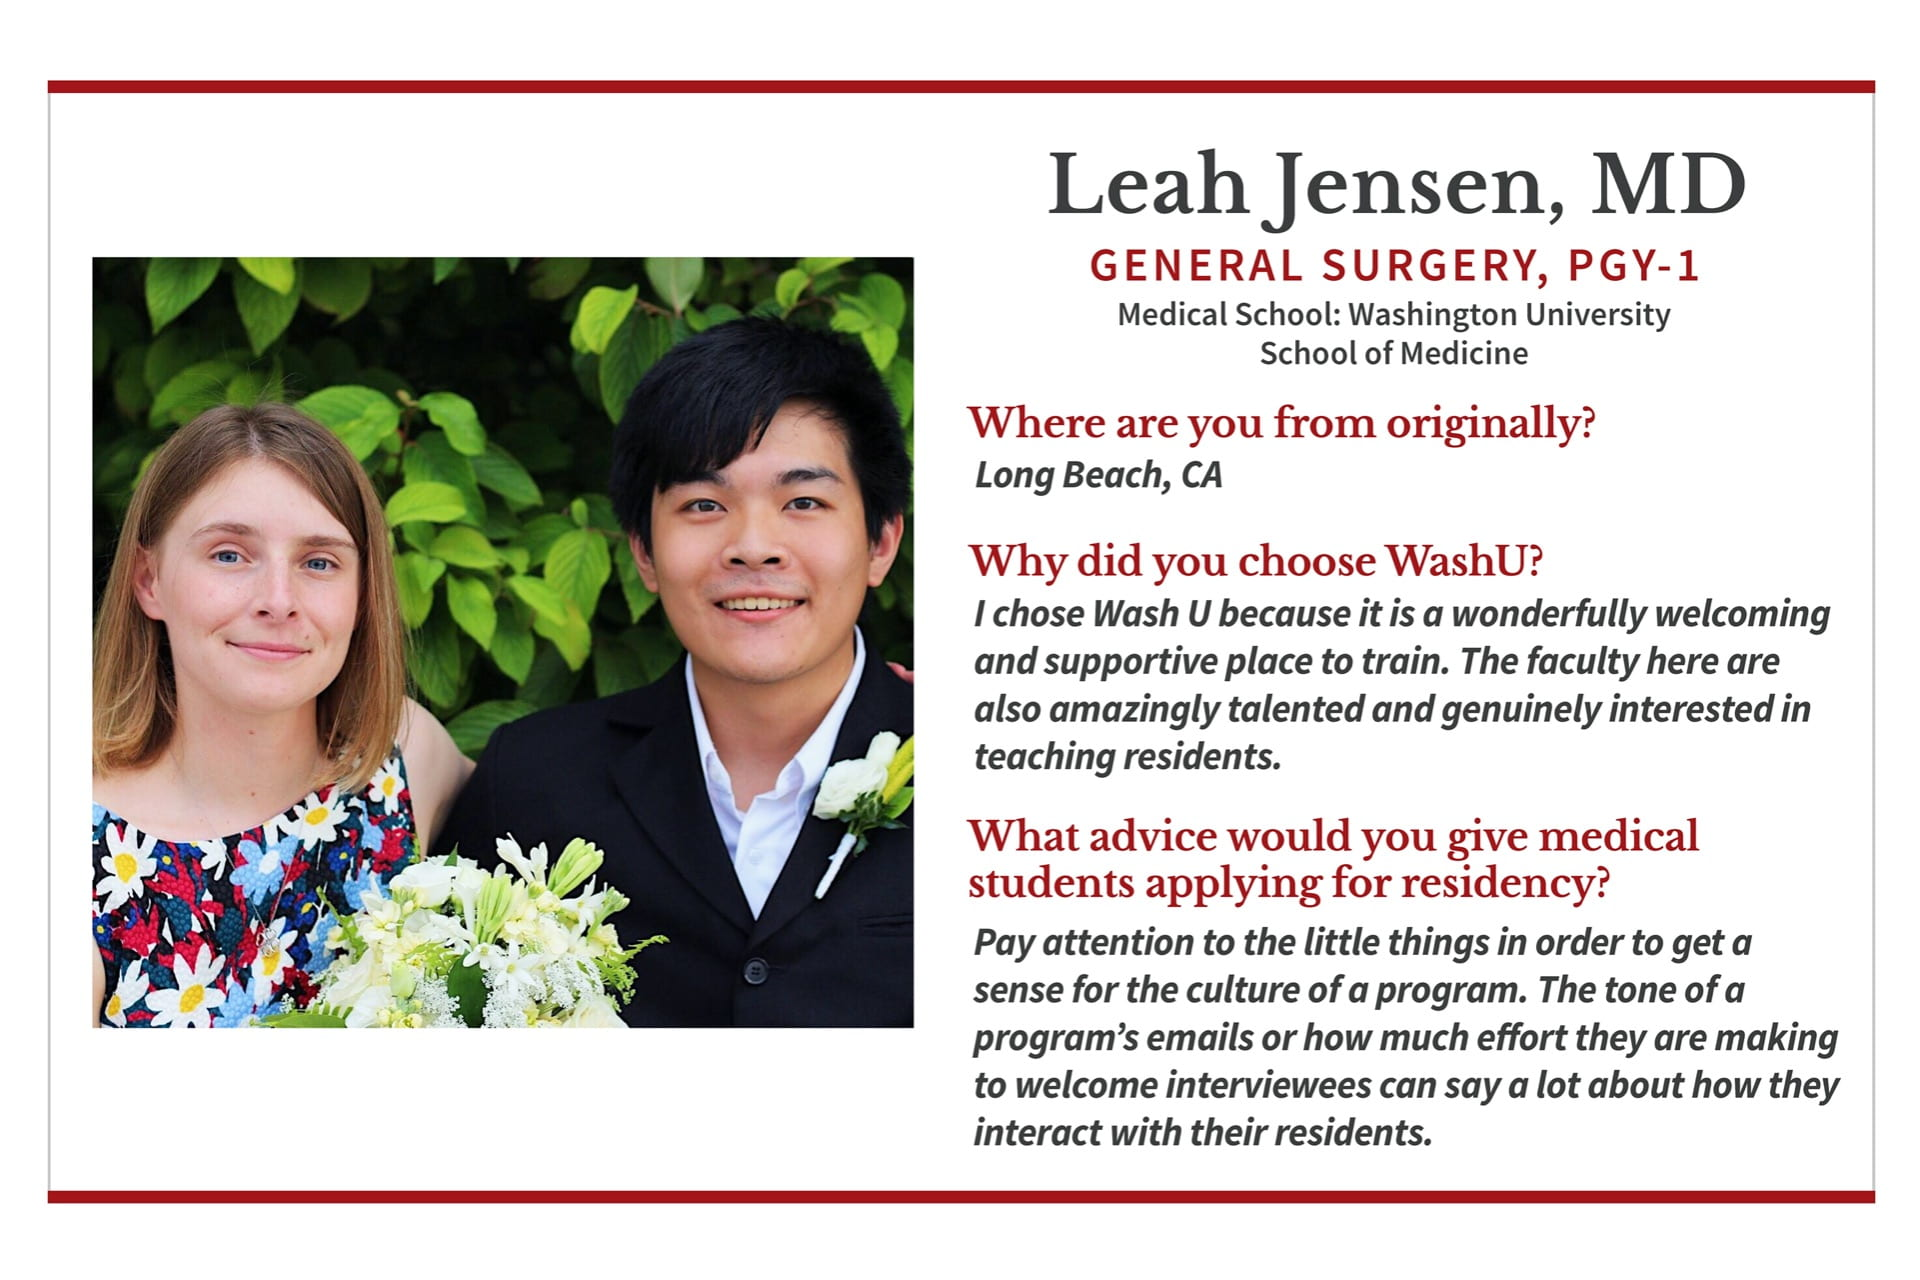 """Jensen is originally from Long Beach, California. When asked why she chose WashU, she says, """"I chose WashU because it is a wonderfully welcoming and supportive place to train. The faculty here are also amazingly talented and genuinely interested in teaching residents."""" When asked what advice she would give medical students applying for residency, she says, """"Pay attention to the little things in order to get a sense for the culture of a program. The tone of a program's emails or how much effort they are making to welcome interviewees can say a lot about how they interact with their residents."""""""